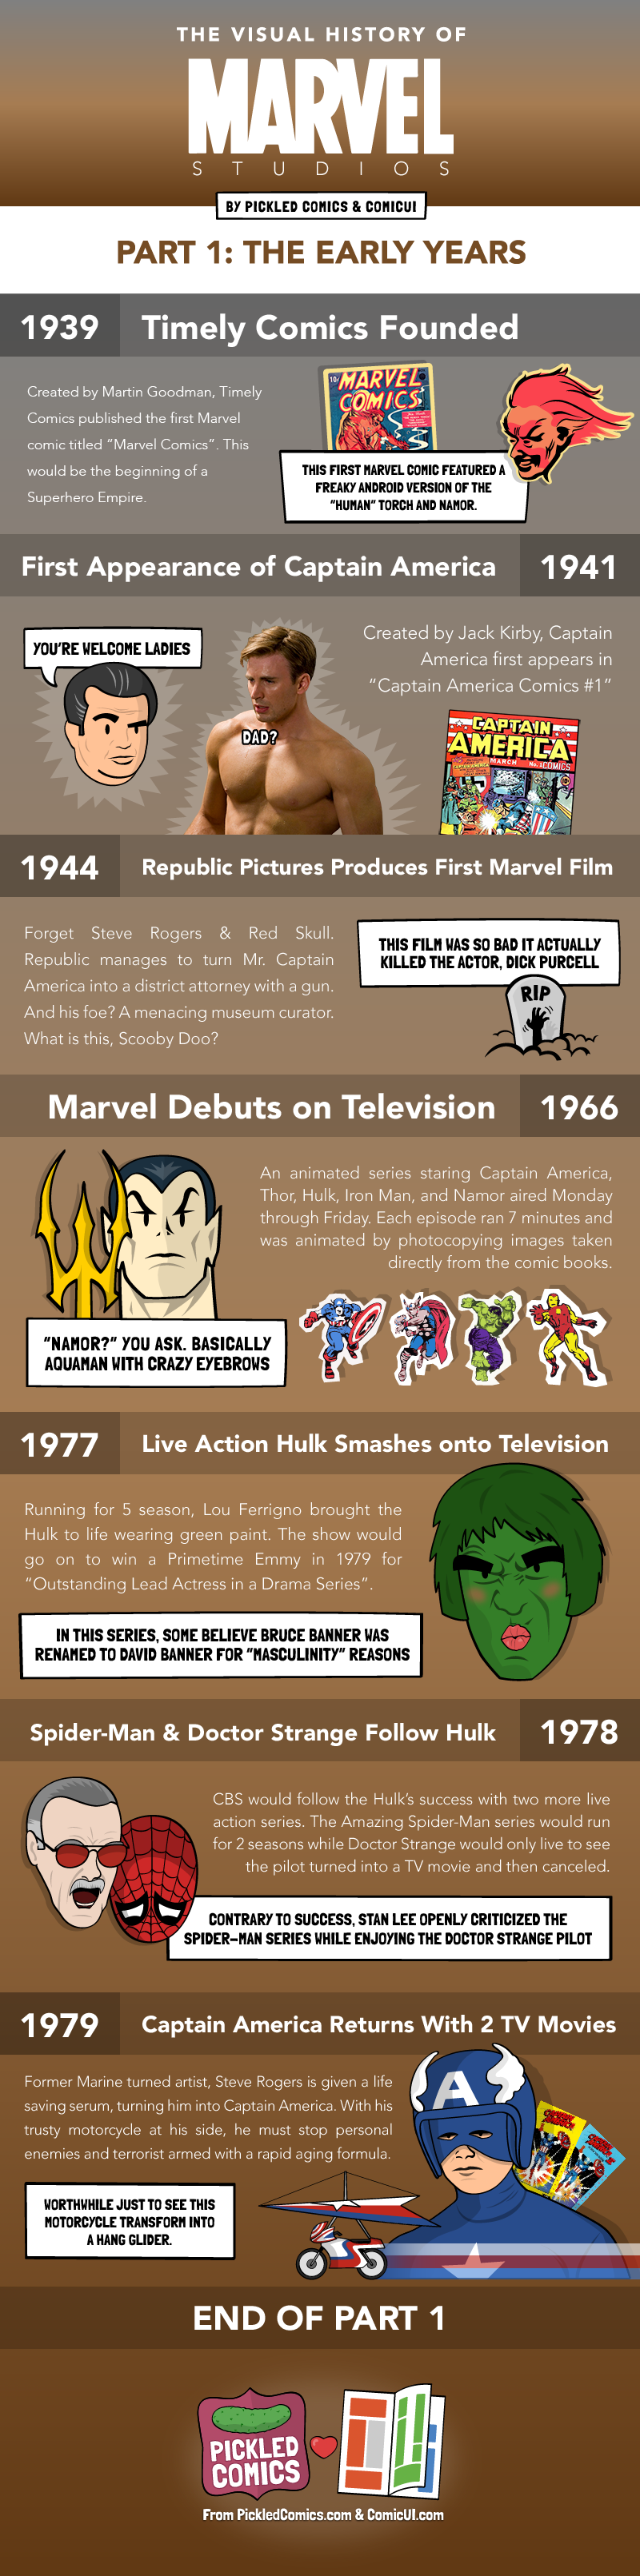 The Visual History Of Marvel Studios. Part 1 starts in 1939 with Timely Comics and ends in 1979 with two Captain America TV Movies.